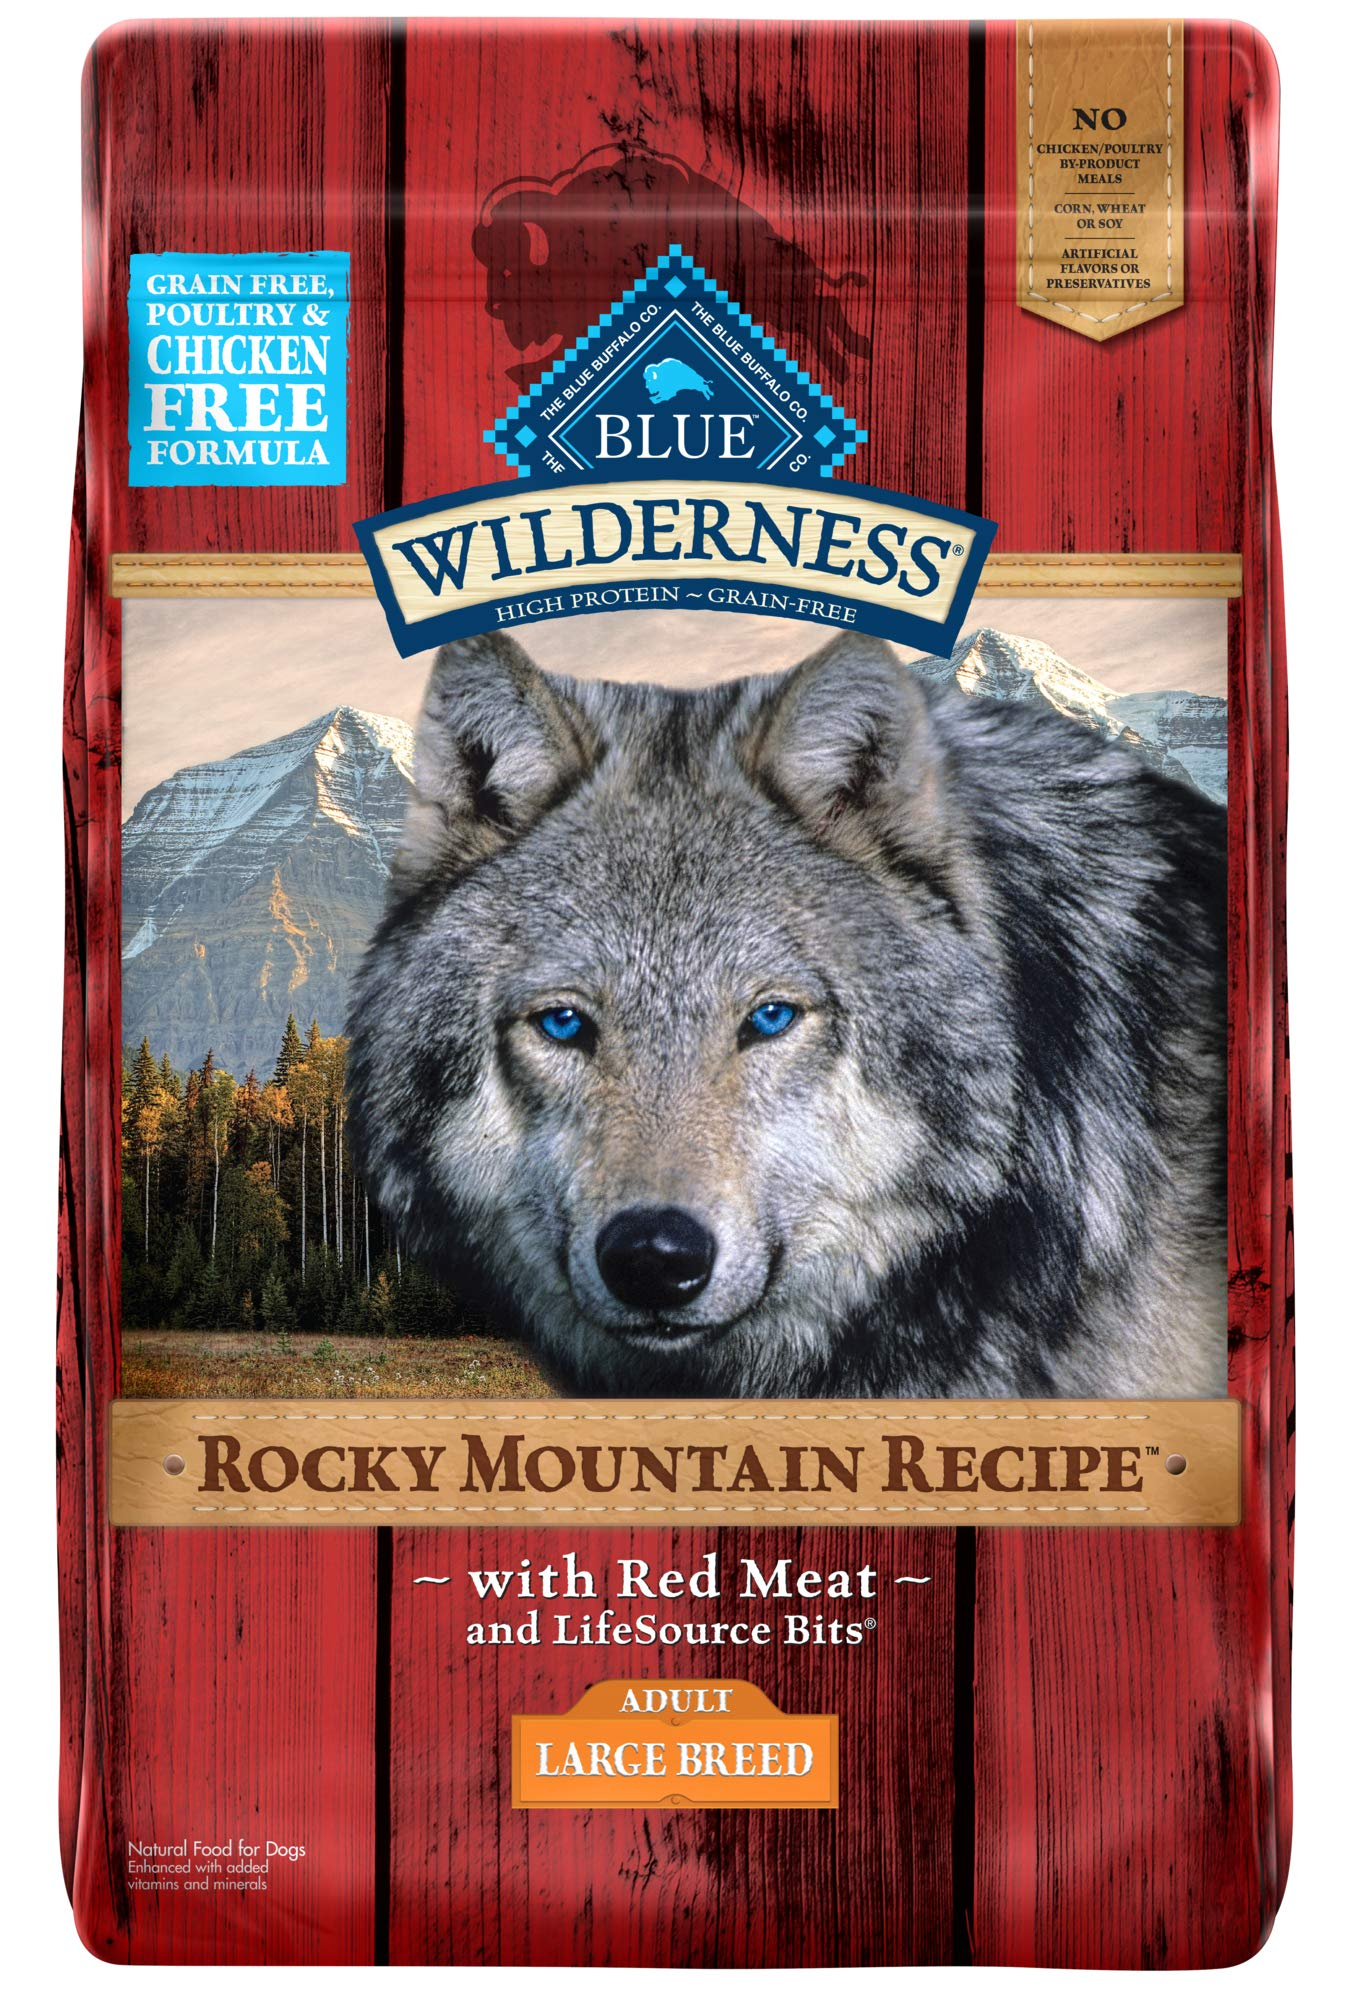 Blue Buffalo Wilderness Rocky Mountain Recipe High Protein Grain Free, Natural Adult Large Breed Dry Dog Food, Red Meat 22-lb by Blue Buffalo